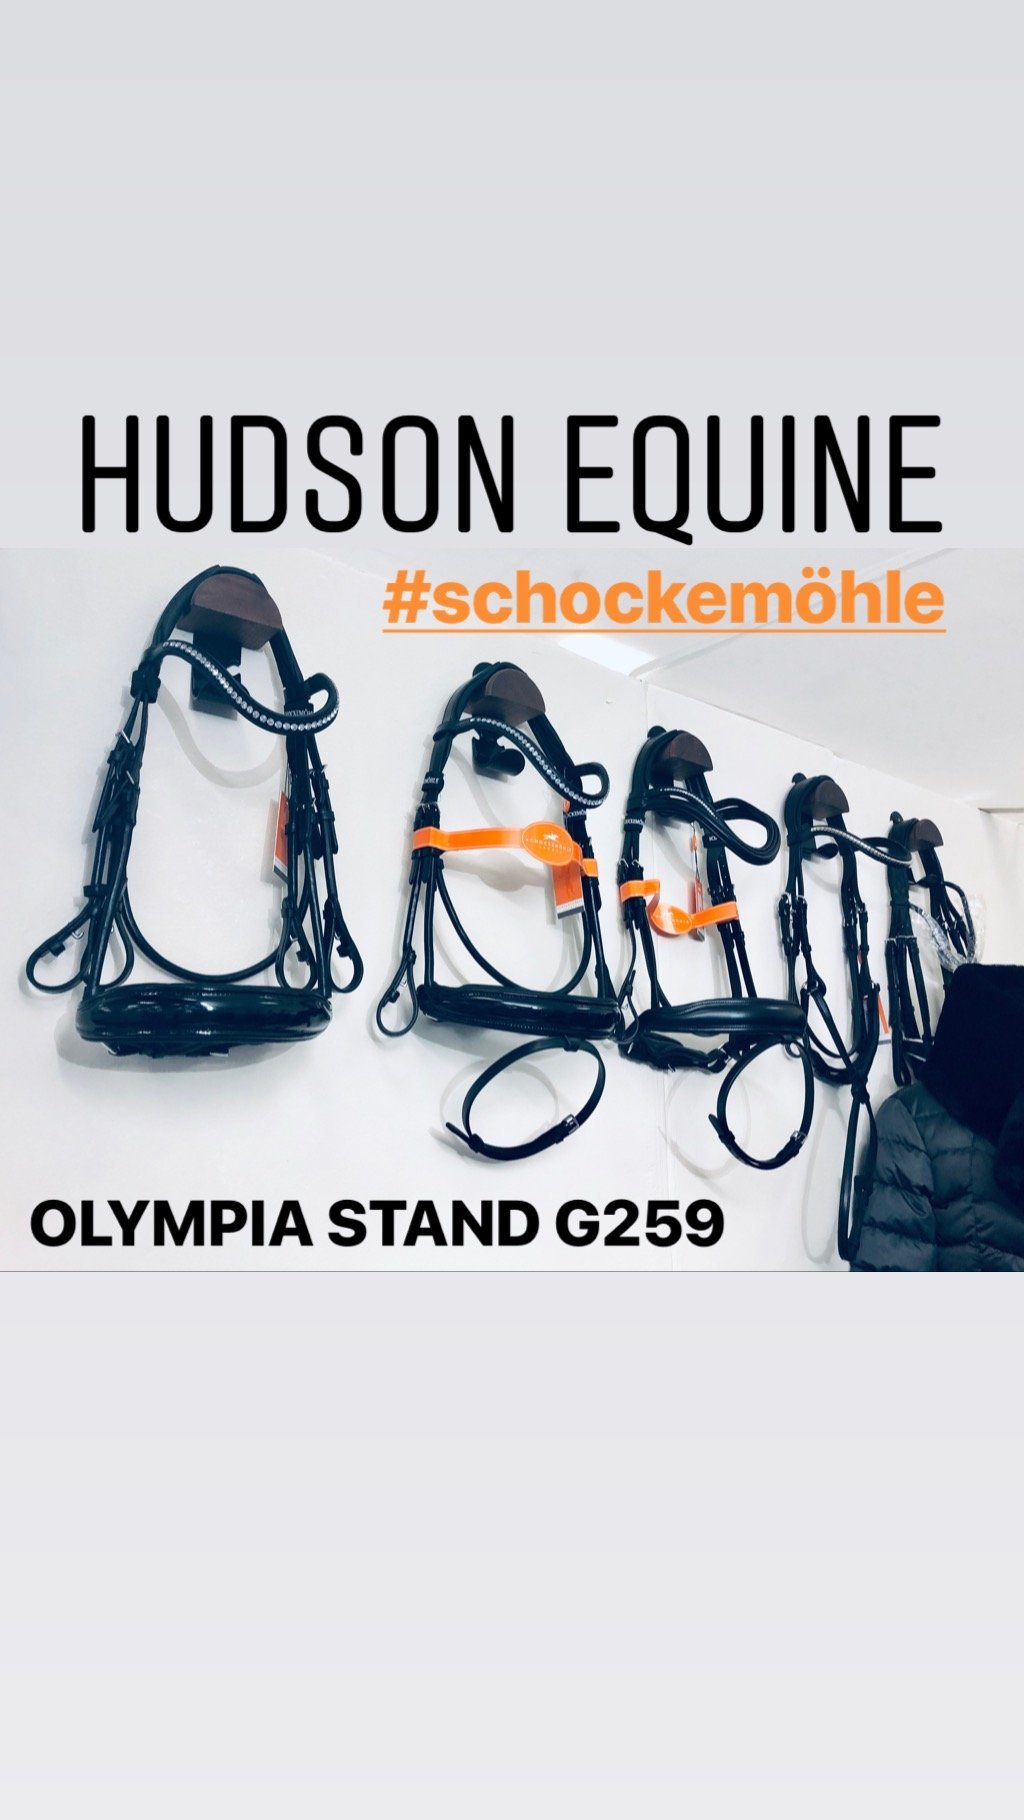 Hudson-equine-olympia-stand-schockemohle-sports